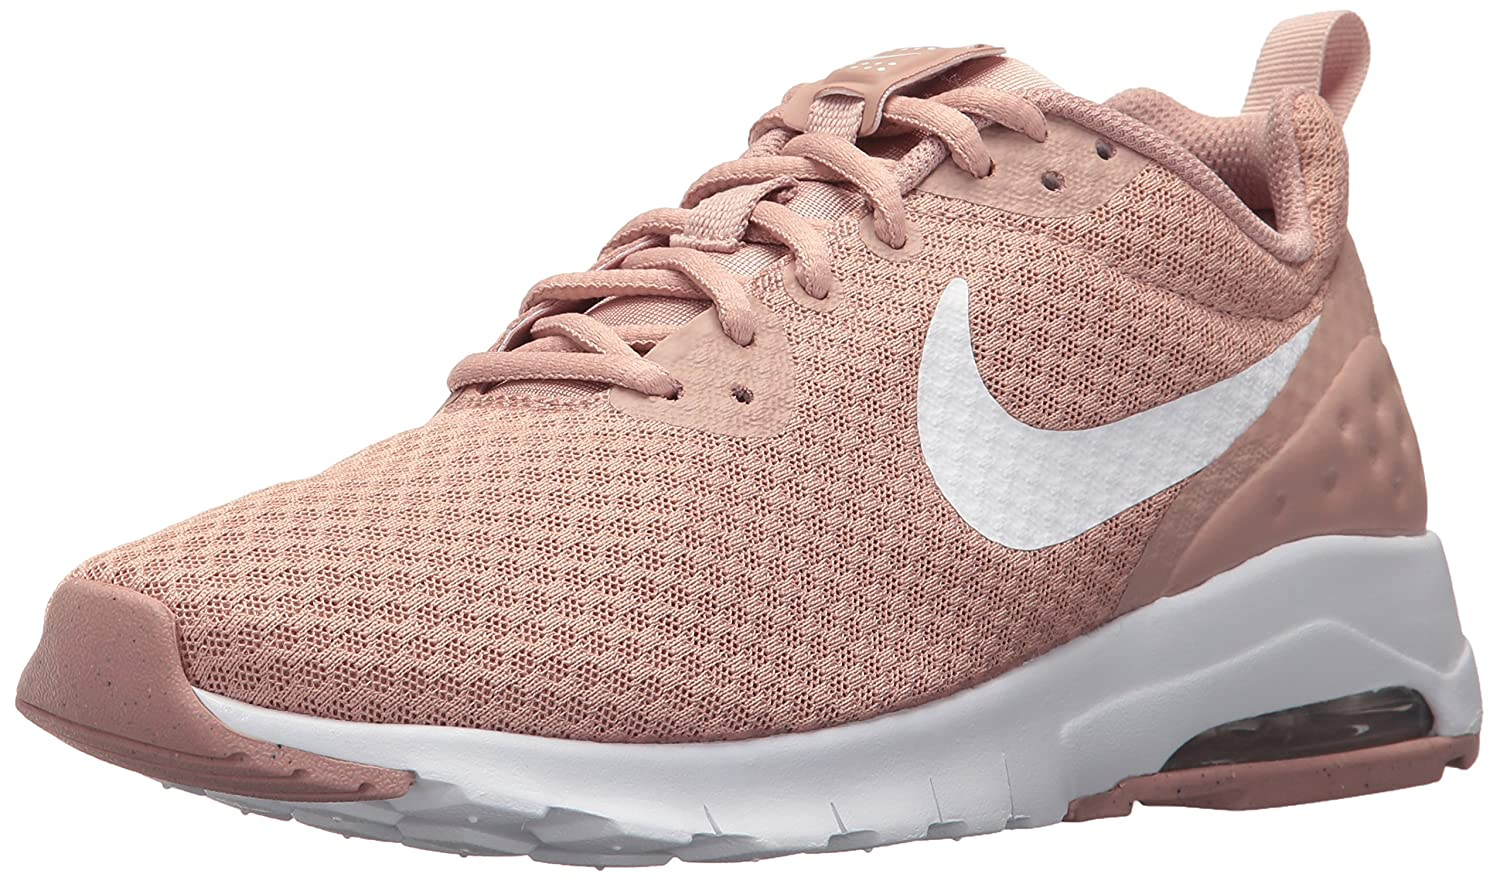 NIKE Women's Air Max Motion Lw Running Shoe B074THX5GN 9 B(M) US|Particle Pink/White